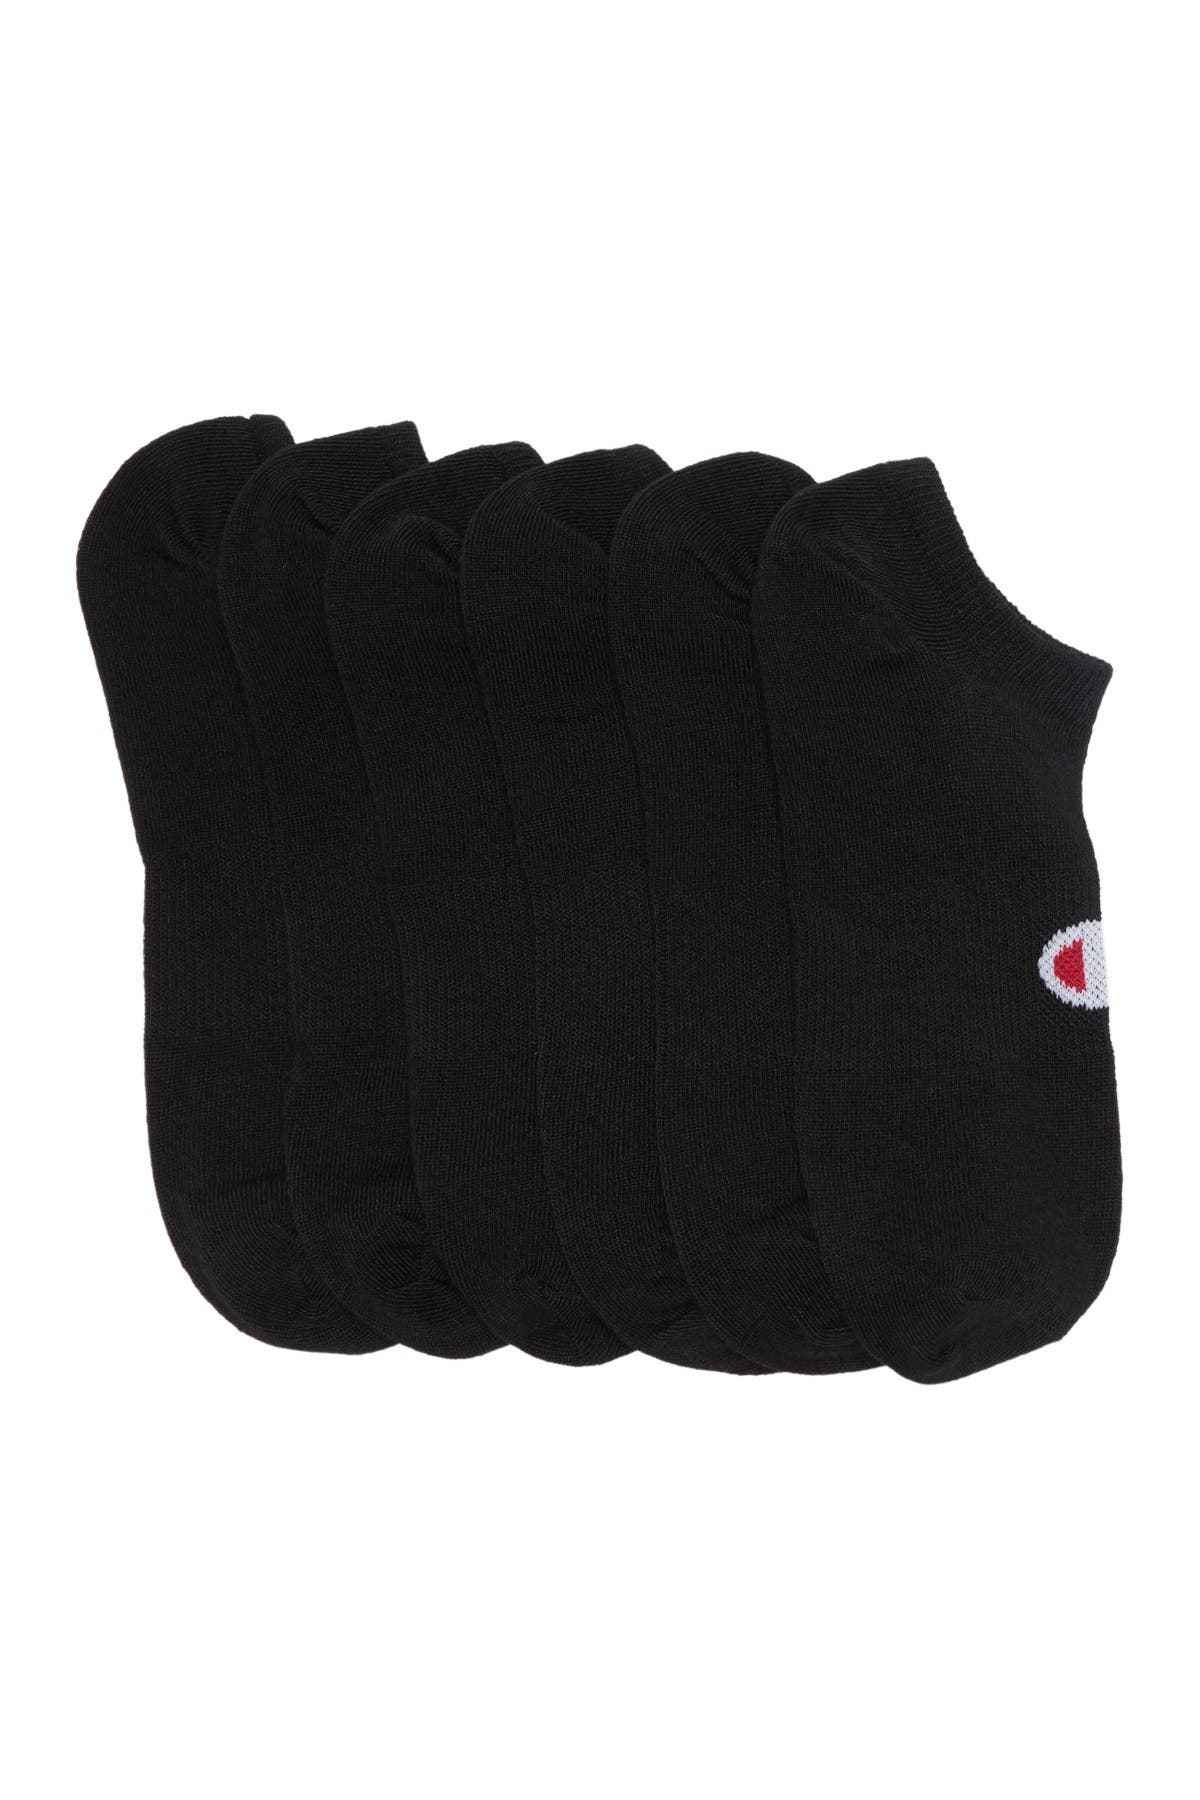 Image of Champion Core Super Low No Show Socks - Pack of 6